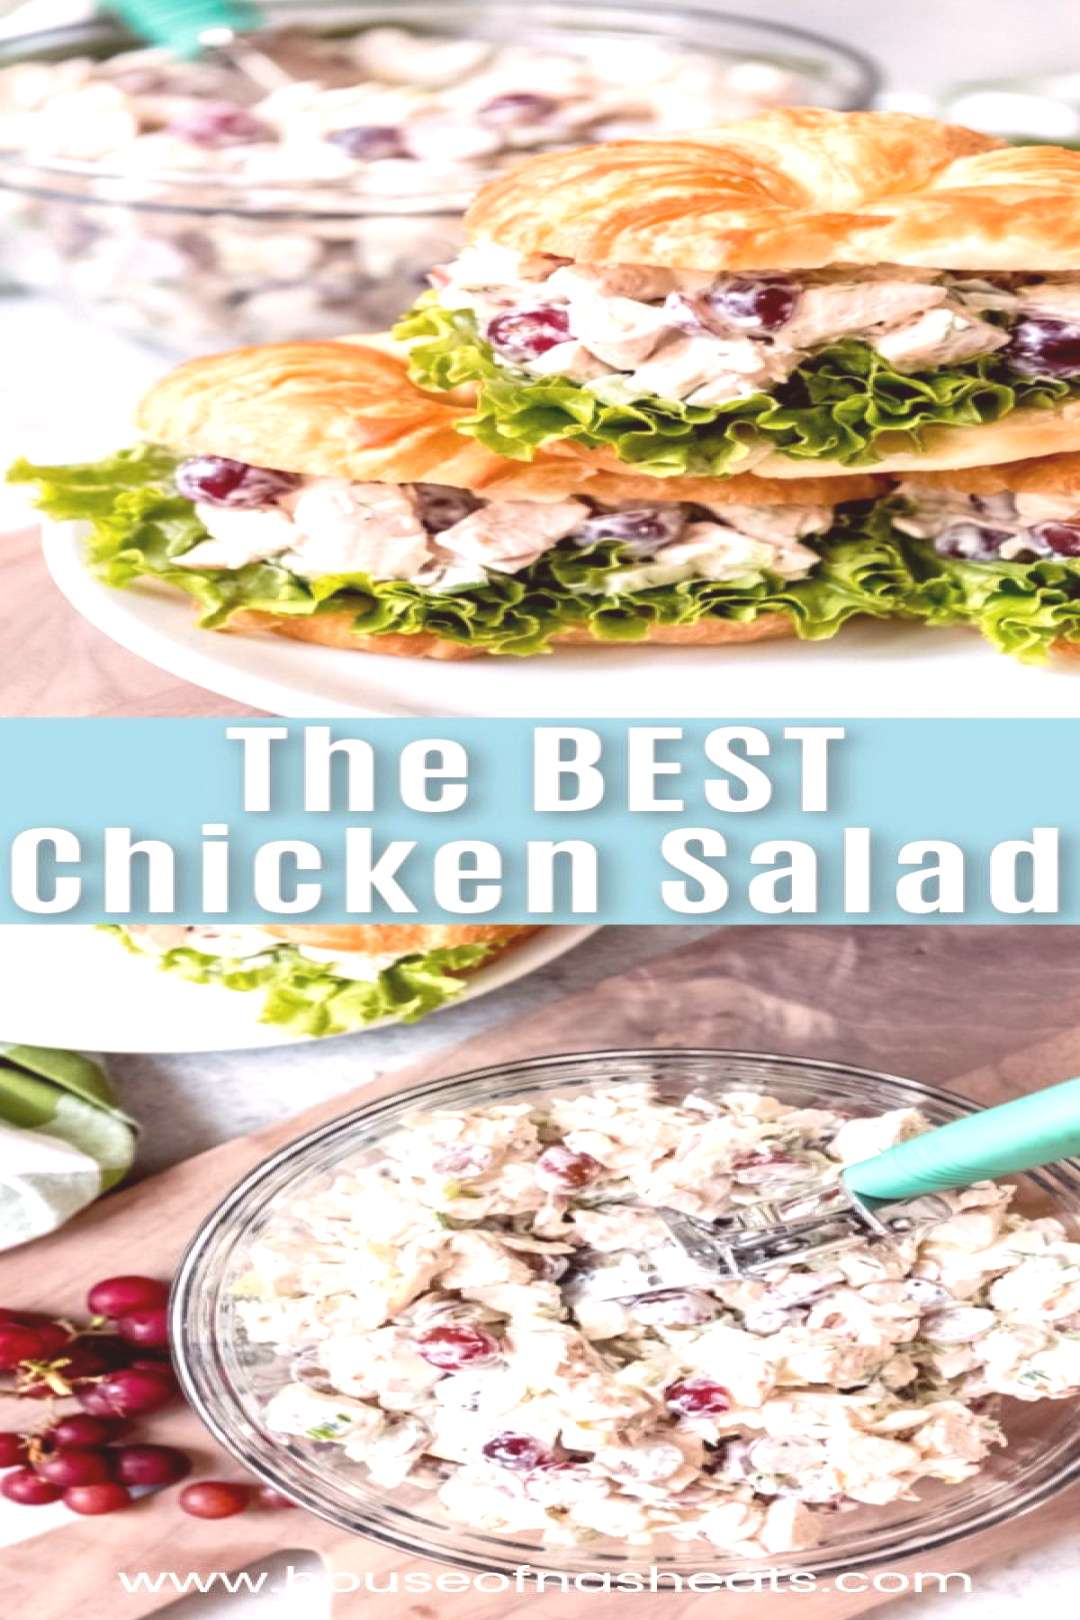 This easy, classic Chicken Salad recipe with grapes and sliced almonds is the best I've ever had an